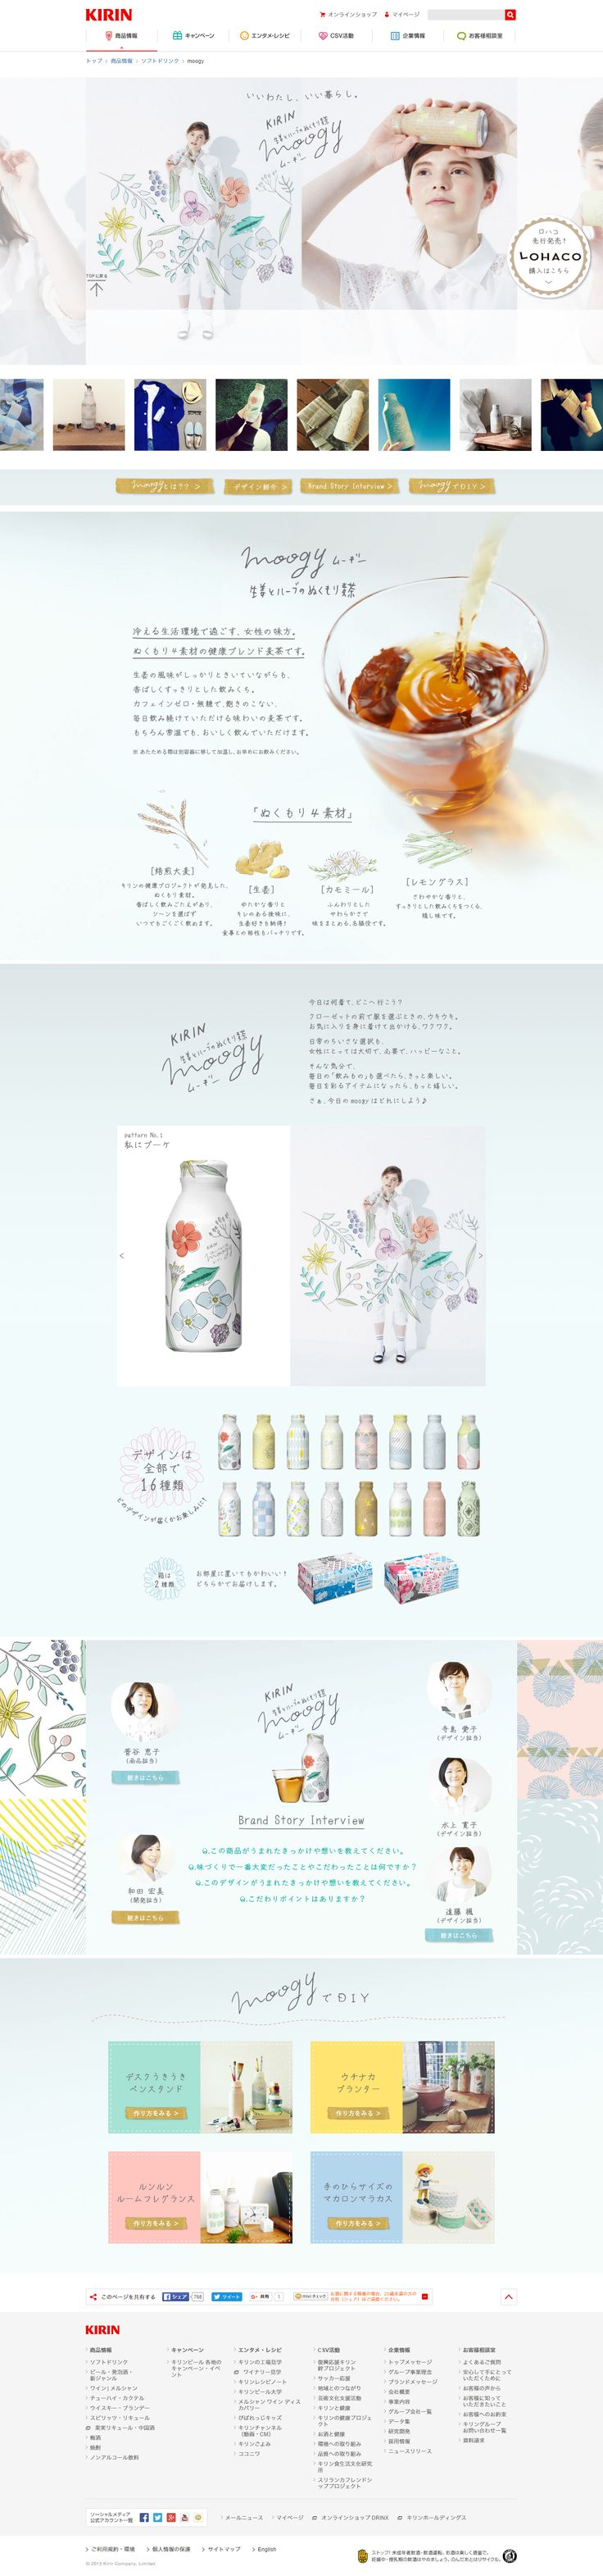 http://www.kirin.co.jp/products/softdrink/moogy/?utm_medium=site